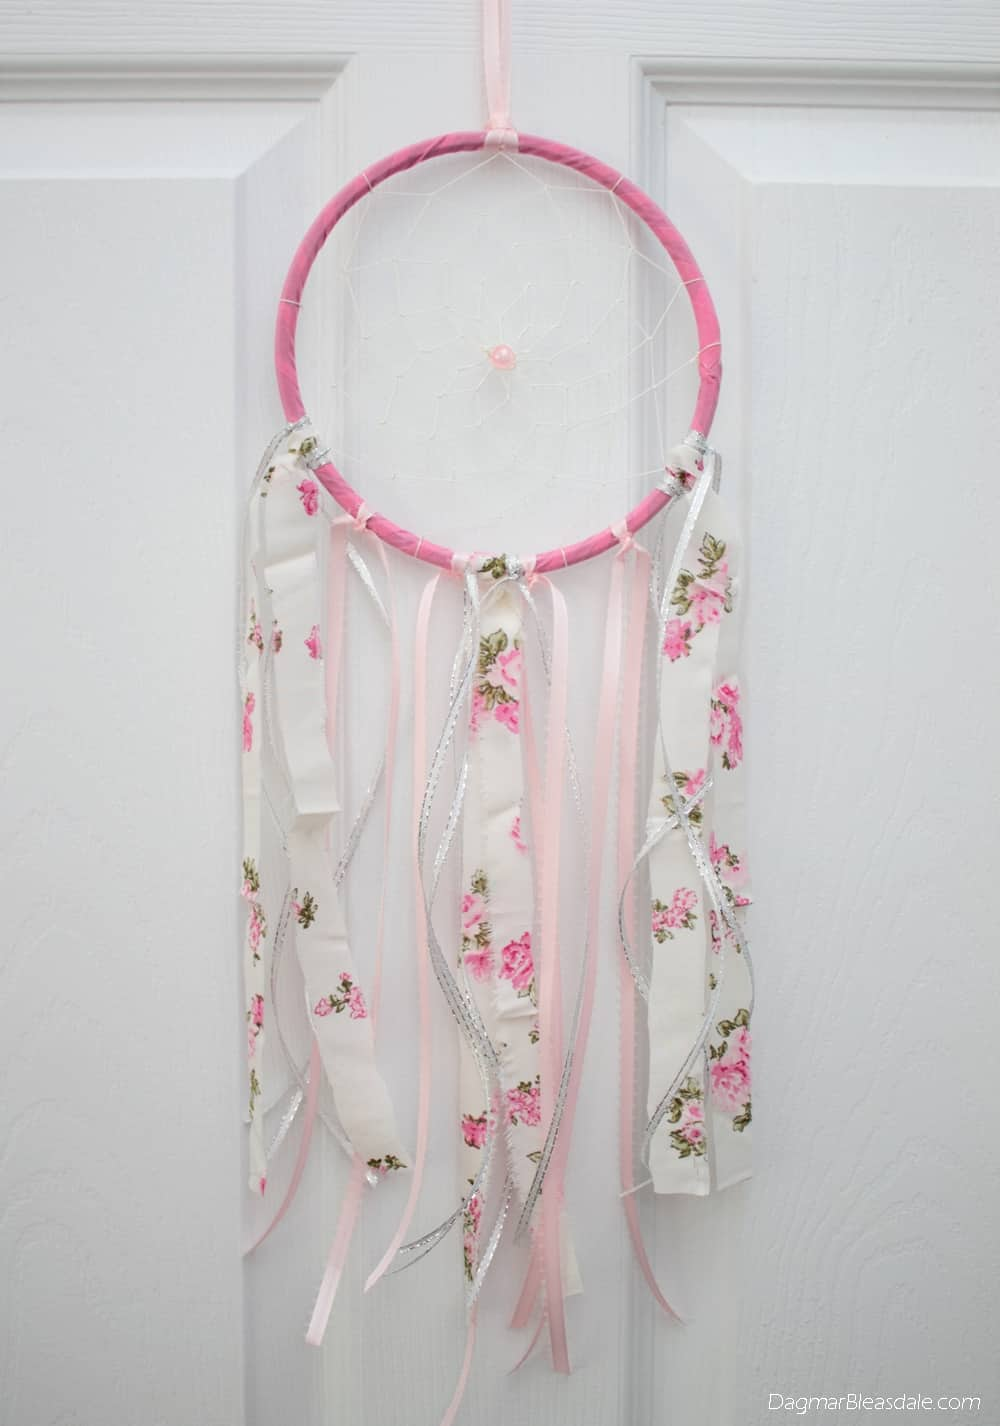 DIY dreamcatcher with lace, embroidry hoop, and ribbons, DagmarBleasdale.com